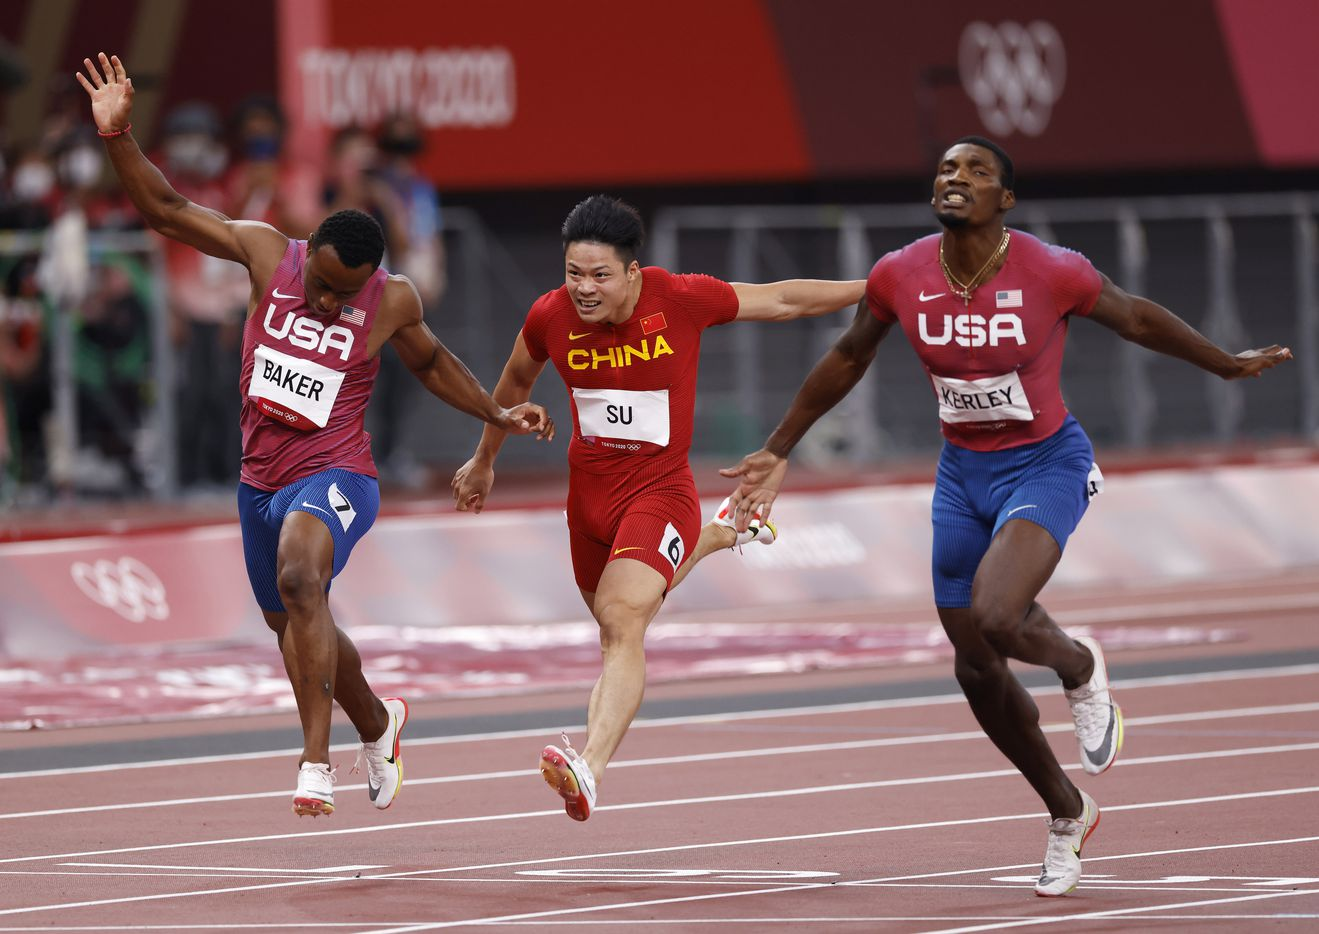 USA's Ronnie Baker, Su Bingtian, and Fred Kerley race to the finish in the men's 100 meter final during the postponed 2020 Tokyo Olympics at Olympic Stadium, on Sunday, August 1, 2021, in Tokyo, Japan. Kerley took second place with a time of 9.84 seconds. Baker took 5th and Bingtian took 6th place. (Vernon Bryant/The Dallas Morning News)